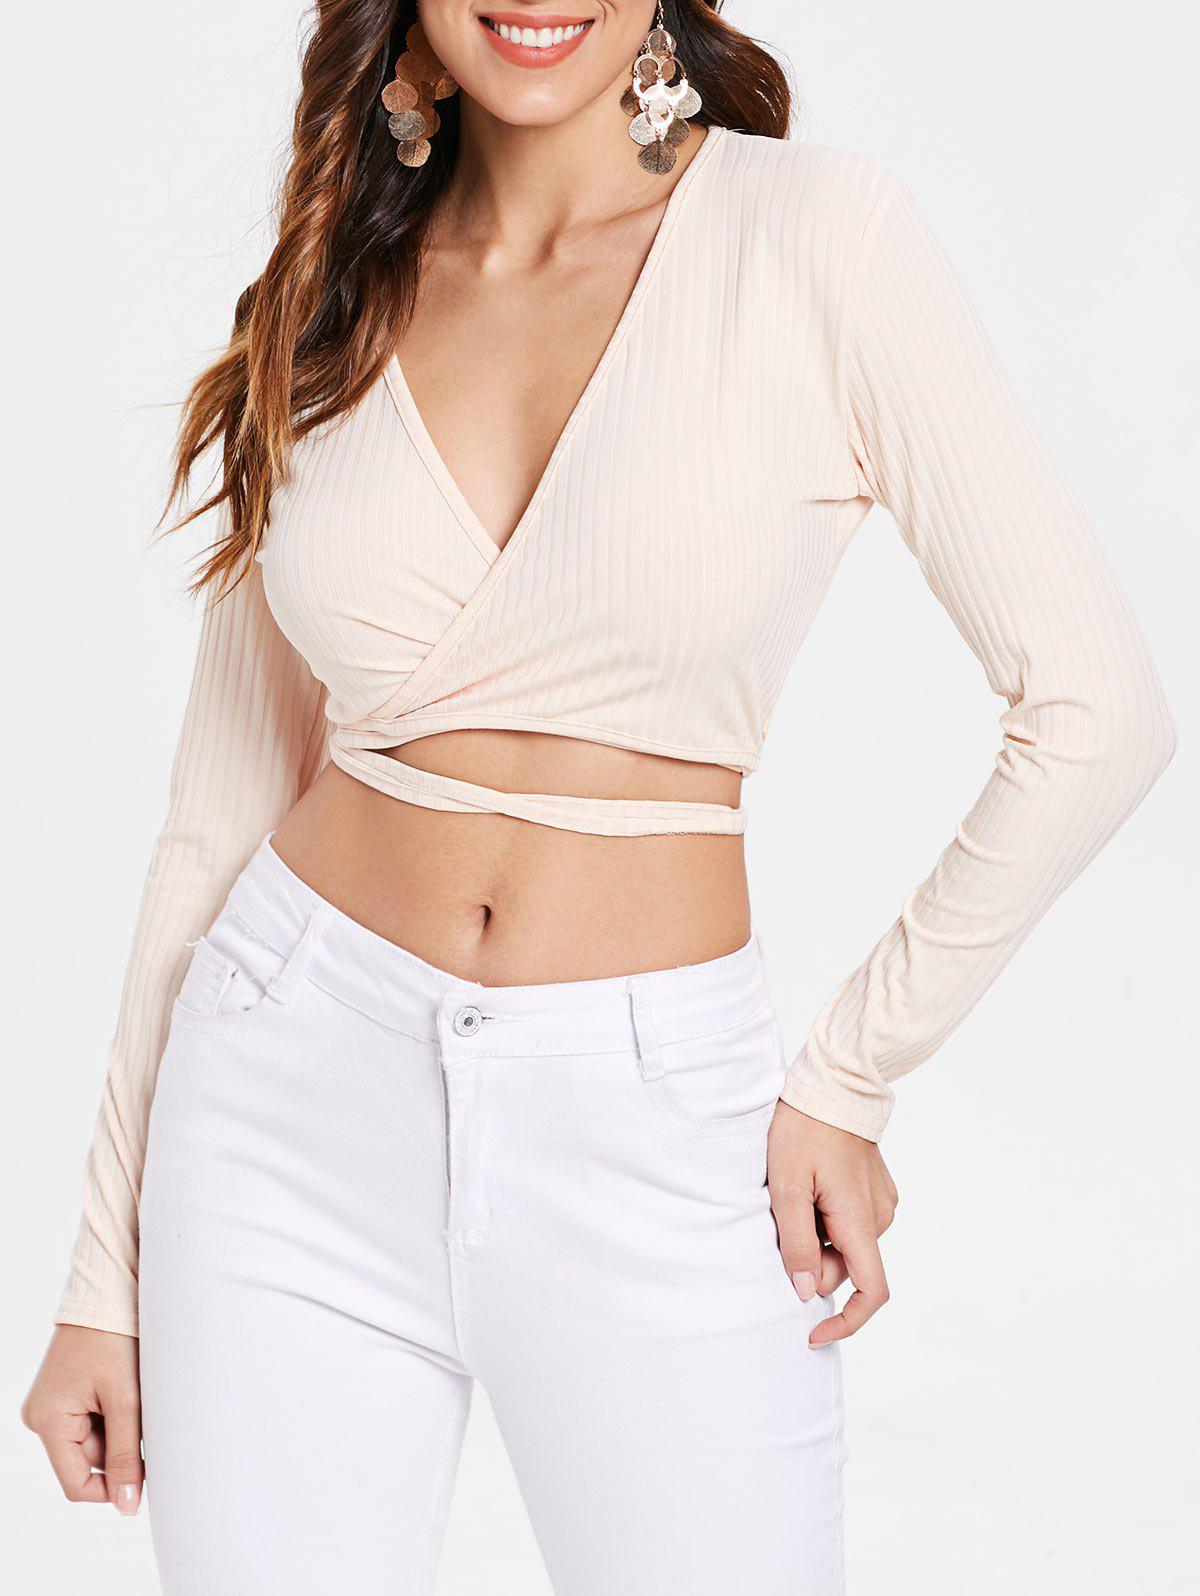 bfc271b3cdf753 62% OFF   2019 Ribbed Wrap Tie Long Sleeve Crop Top